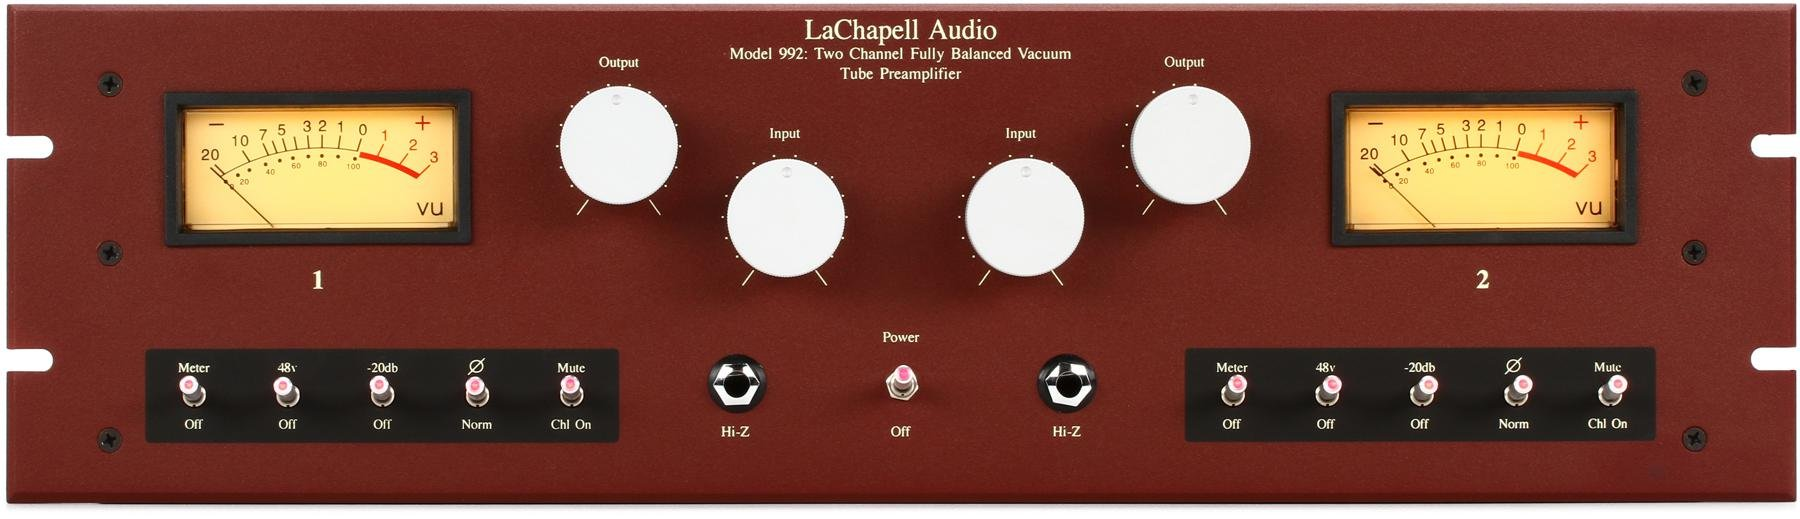 Lachapell Audio 992eg Sweetwater Vacuum Tube Microphone Preamp Image 1